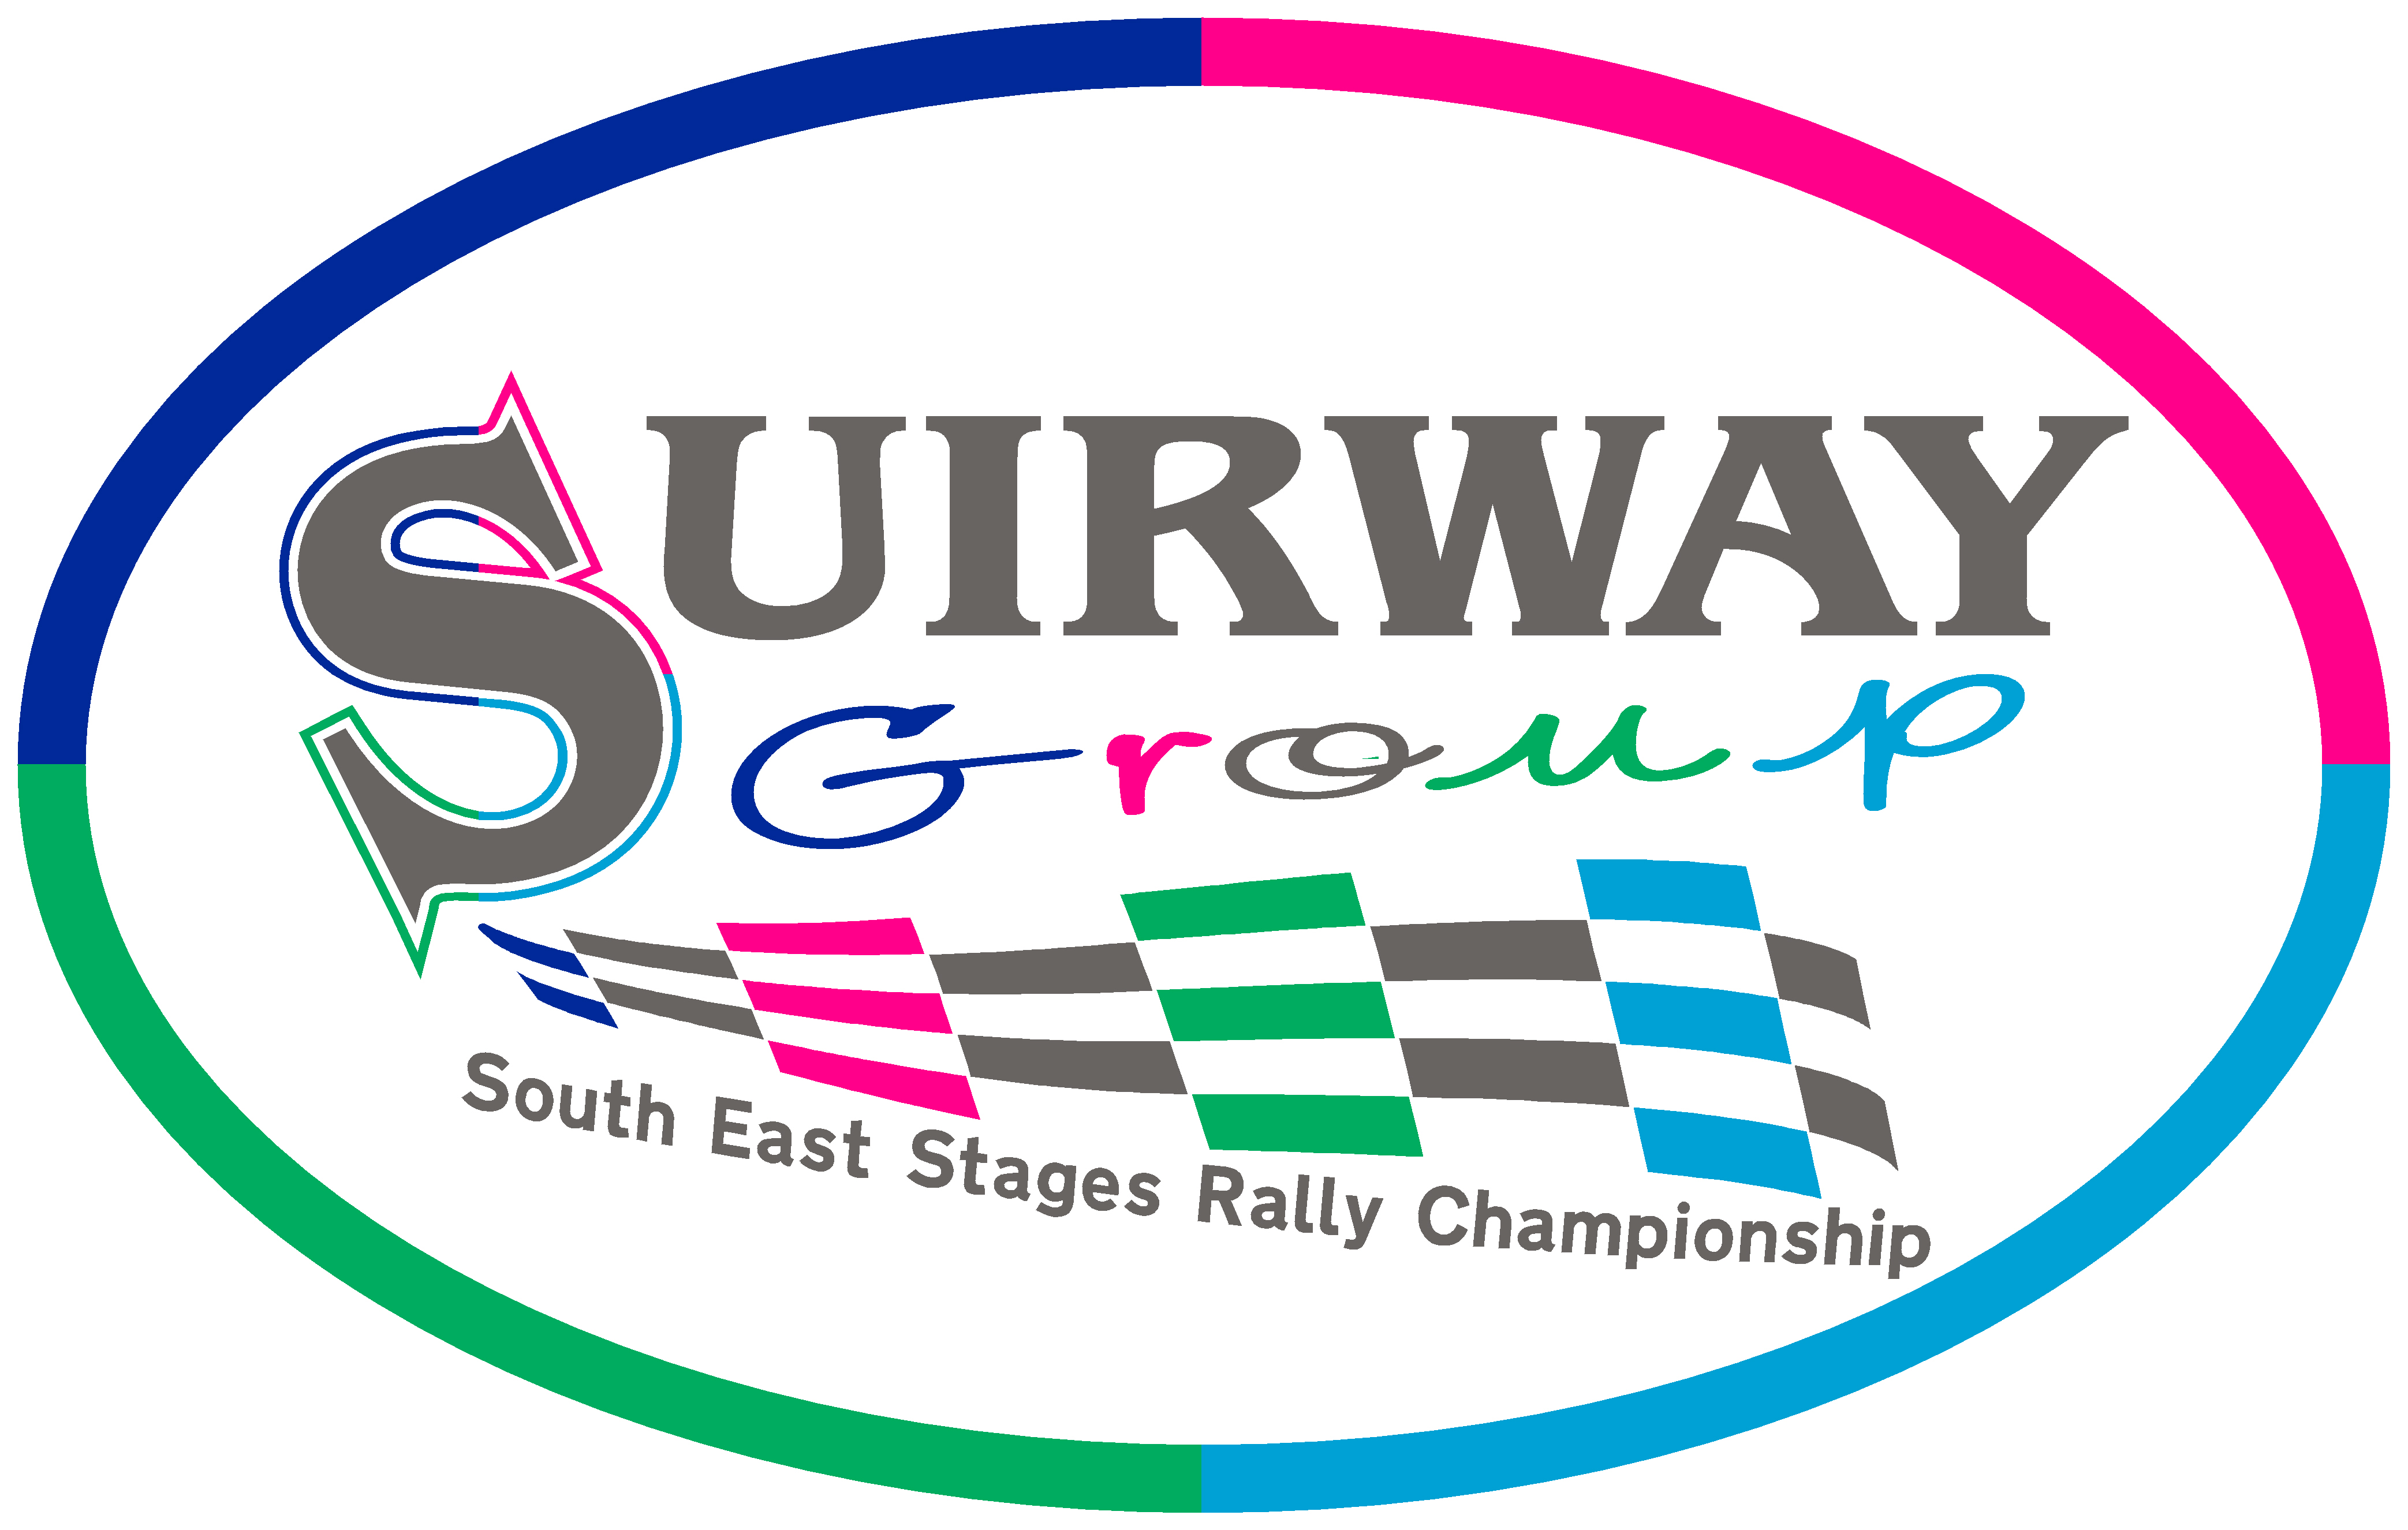 Suirway Group SES oval